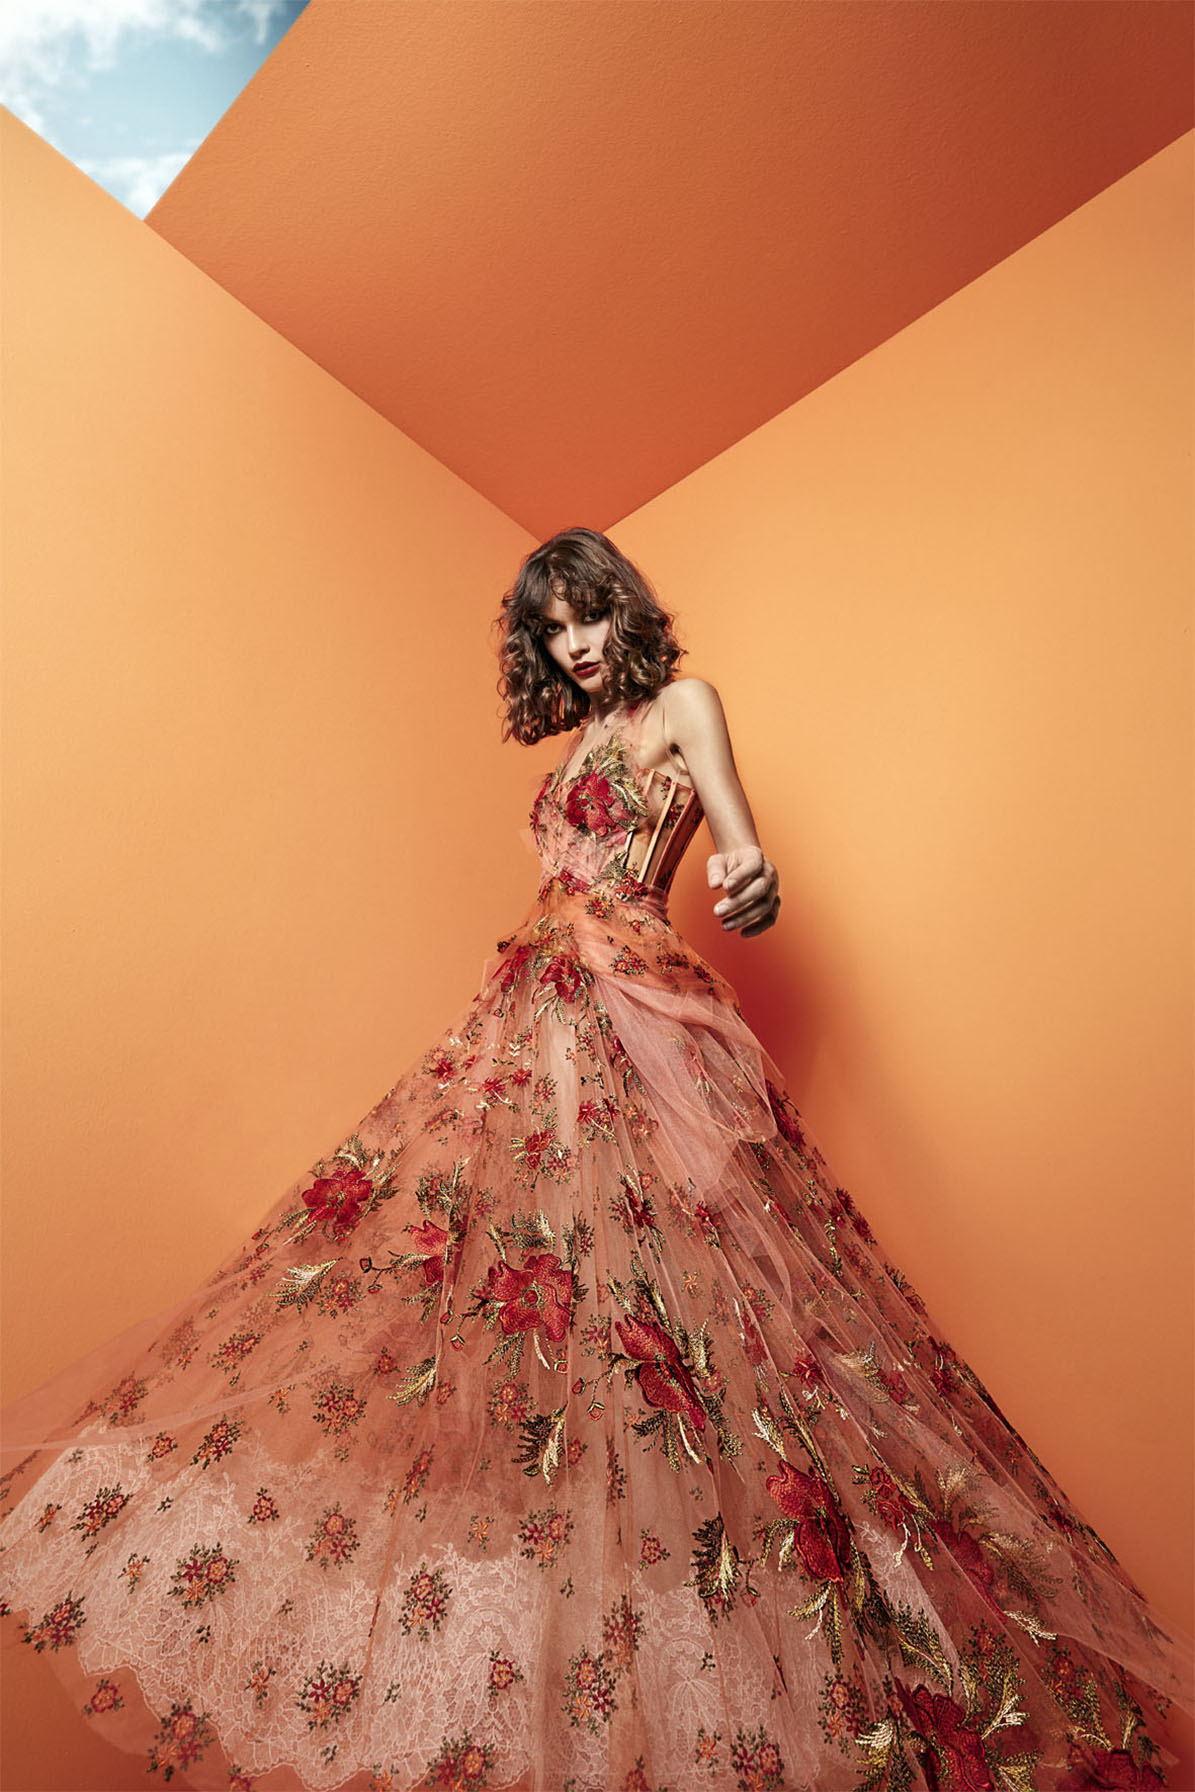 dress-orange-flowers-embroidery-long-dress-no-sleeve-high-fashion-couture-desing-yolan-cris-yolancris-night-out (2).jpg